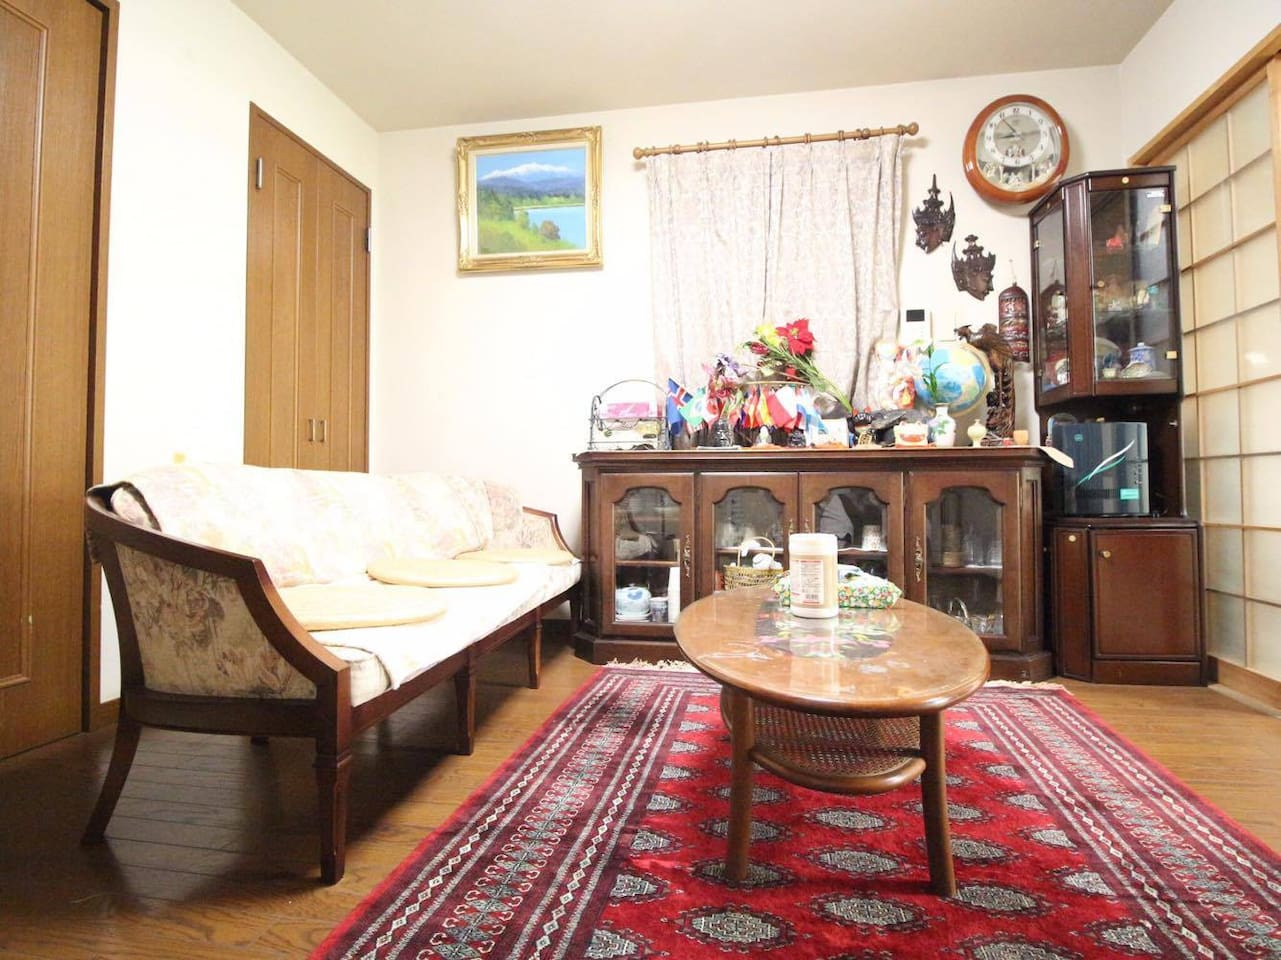 Cozy and clean place to stay. Enough space for 4 people. 4人での宿泊に適したお部屋です。